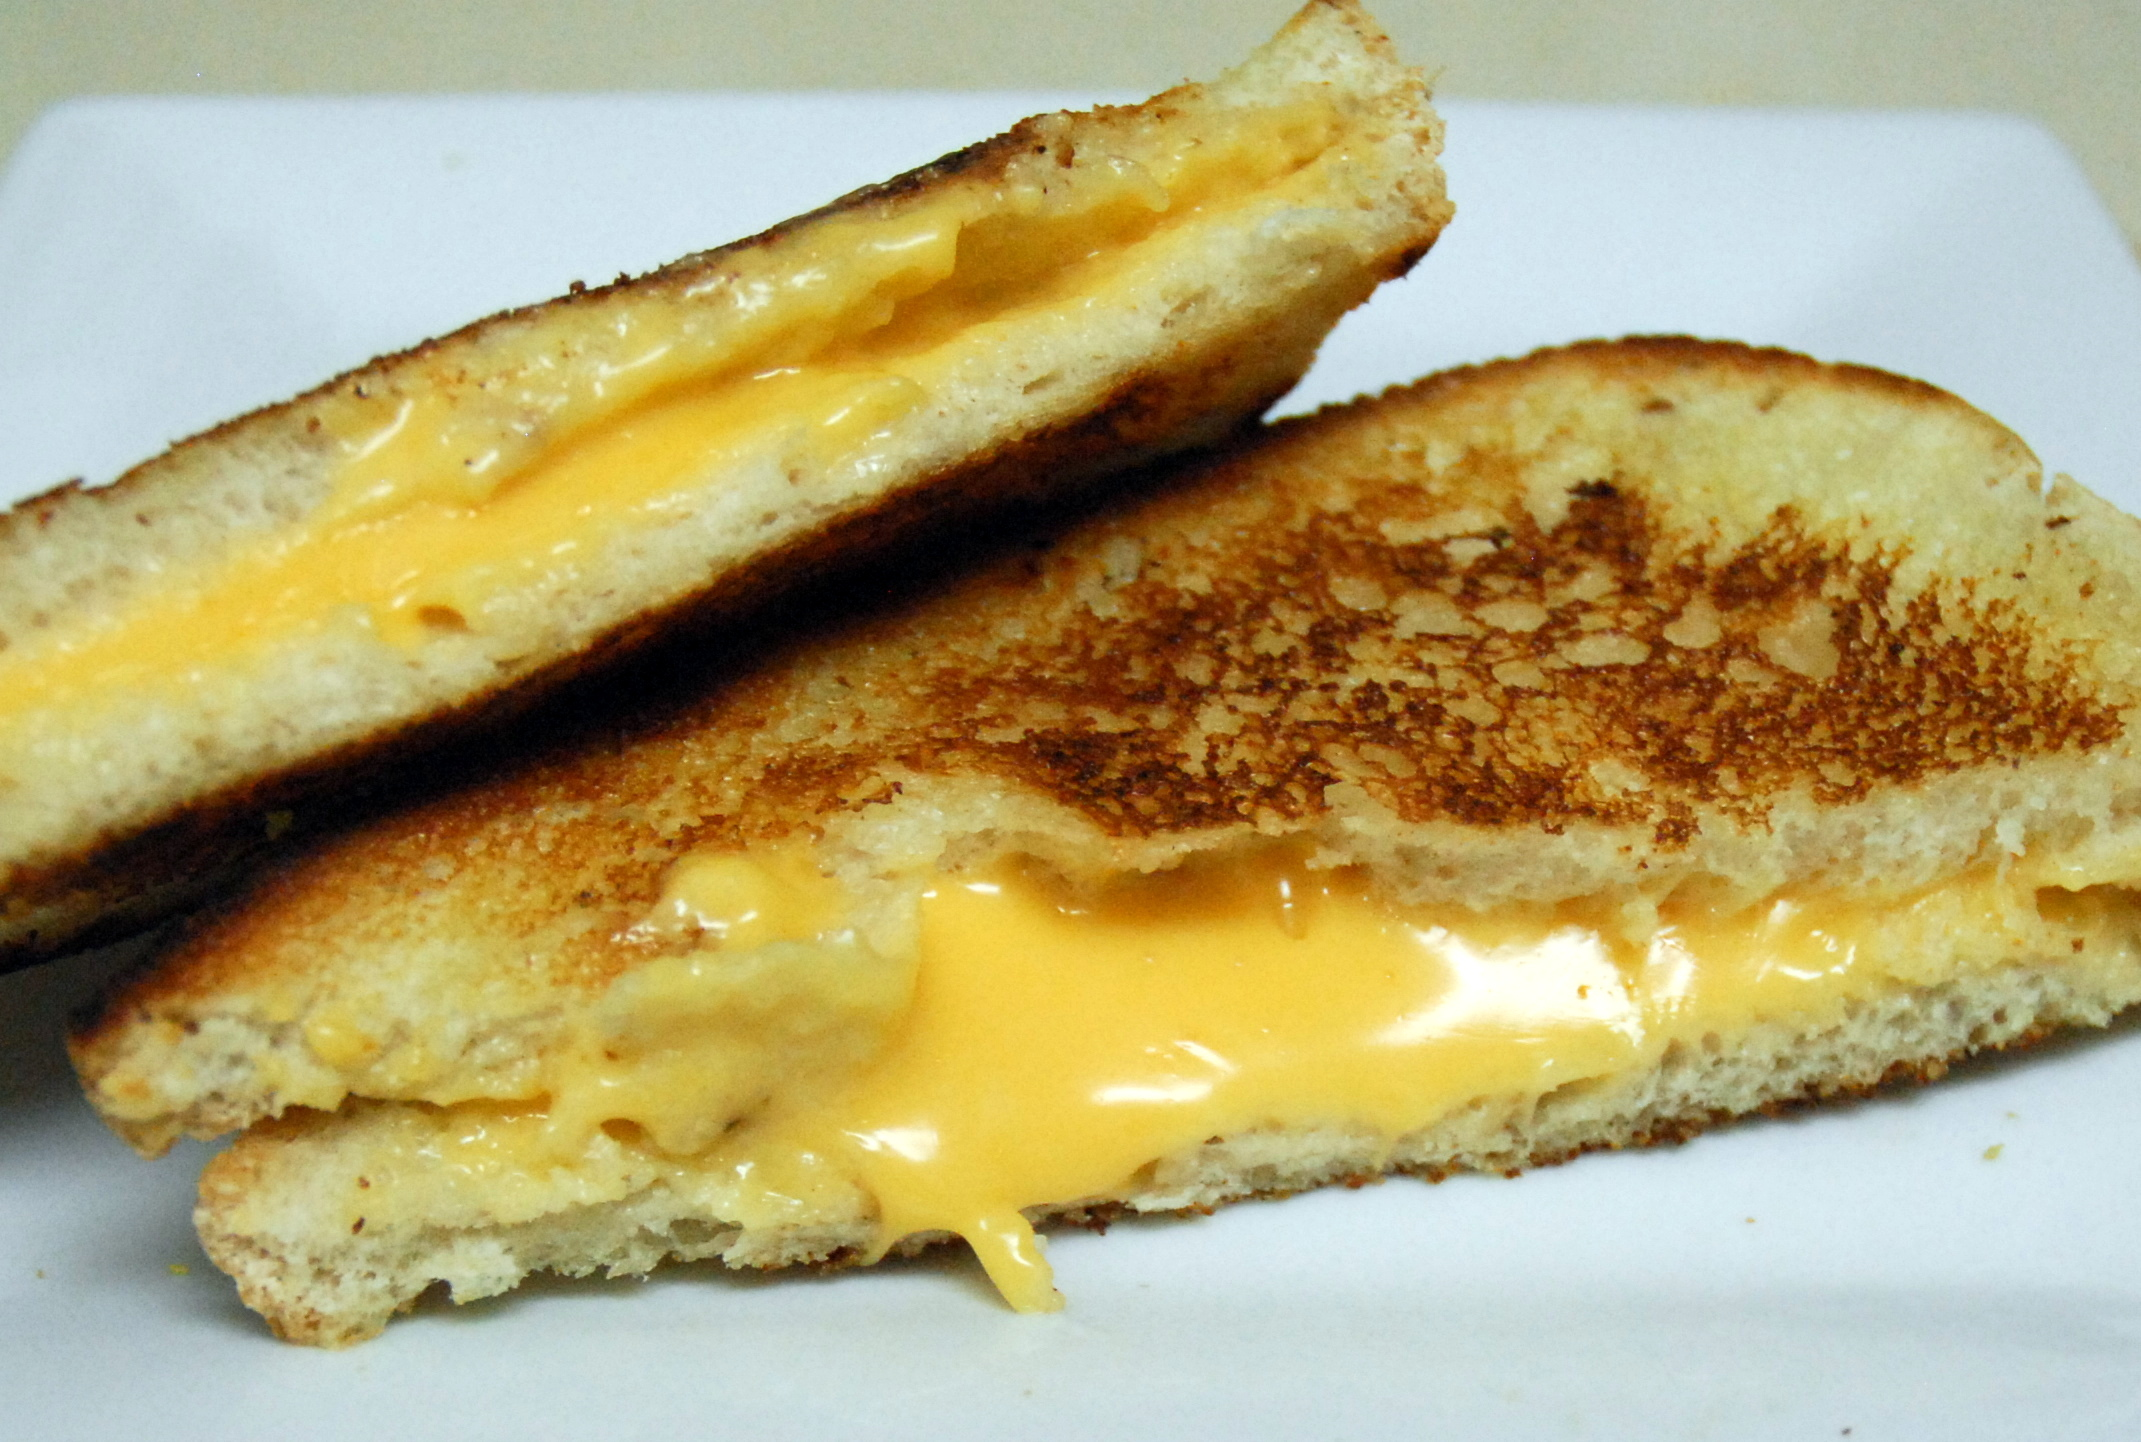 Grilled Cheese Sandwich I grew up on grilled cheese